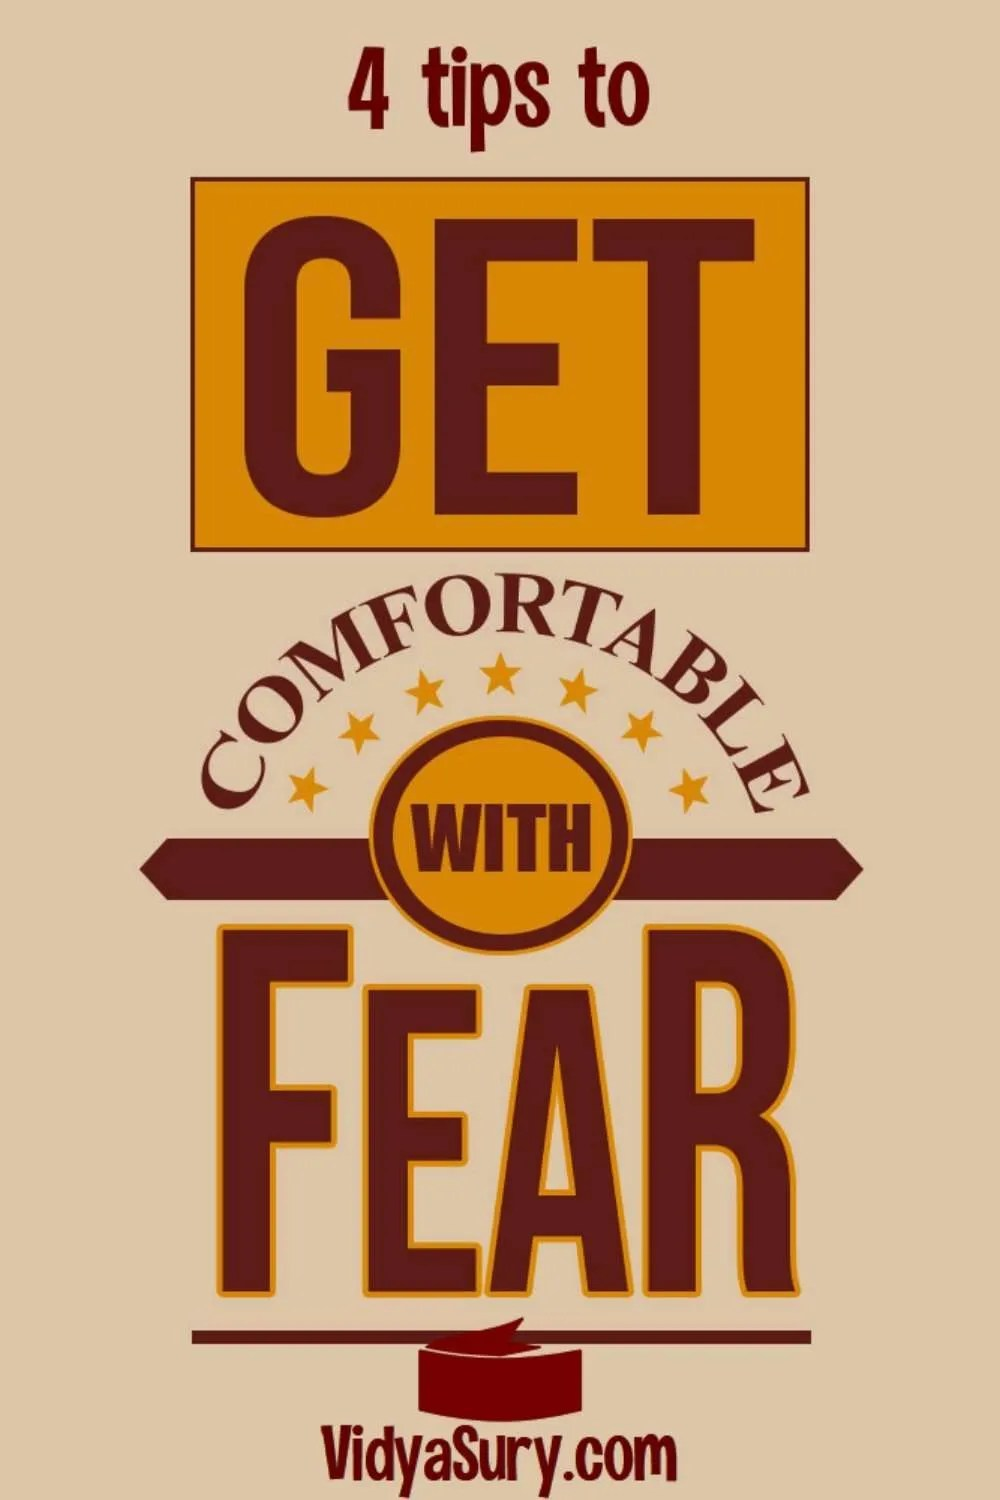 4 tips to conquer fear